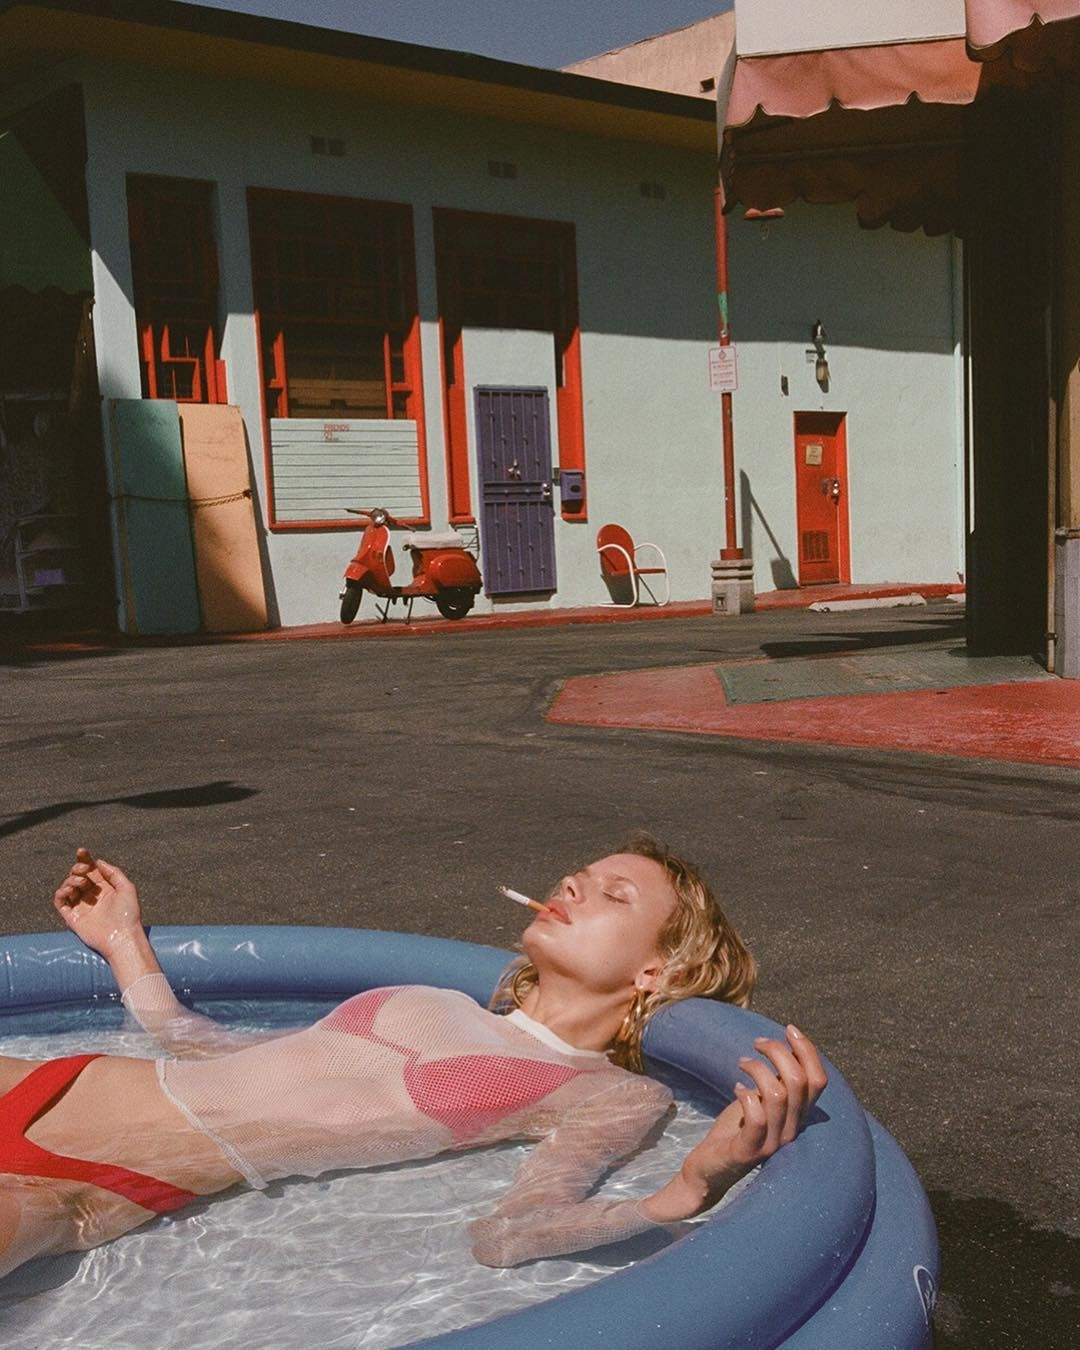 Vibrant Fashion and Glamour Film Photography by Jason Lee Parry #retroideas